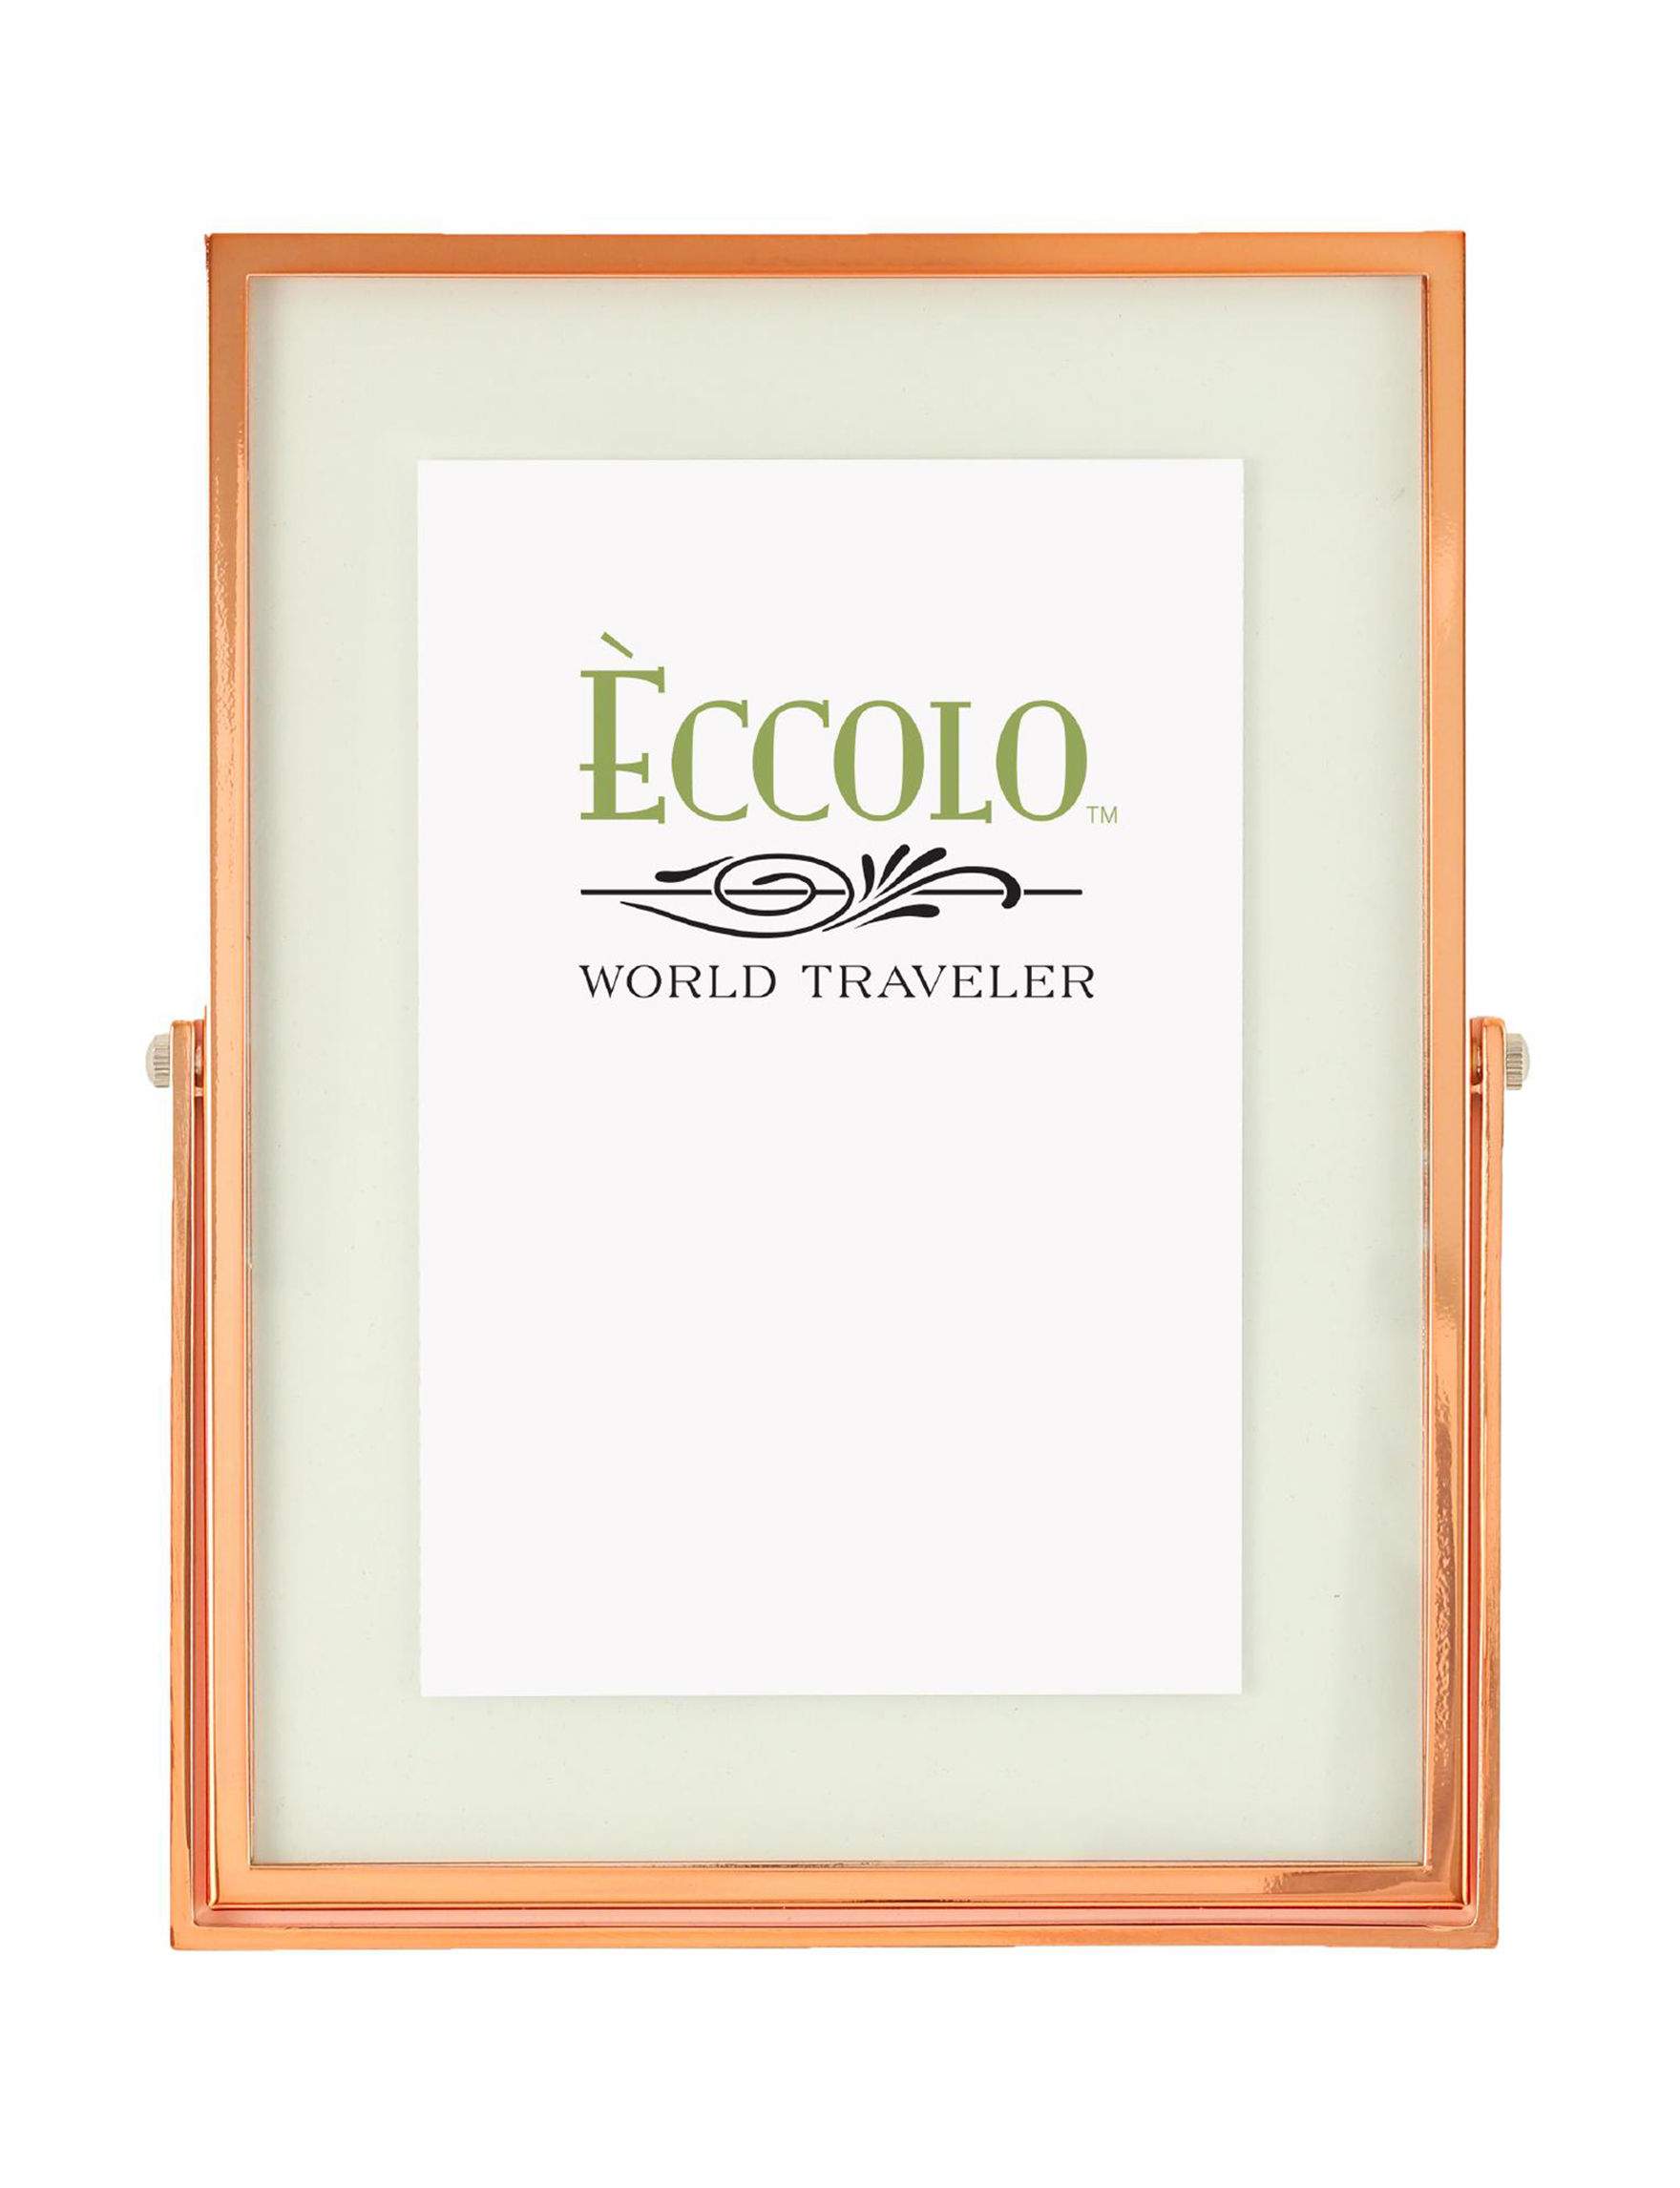 Eccolo Copper Frames & Shadow Boxes Home Accents